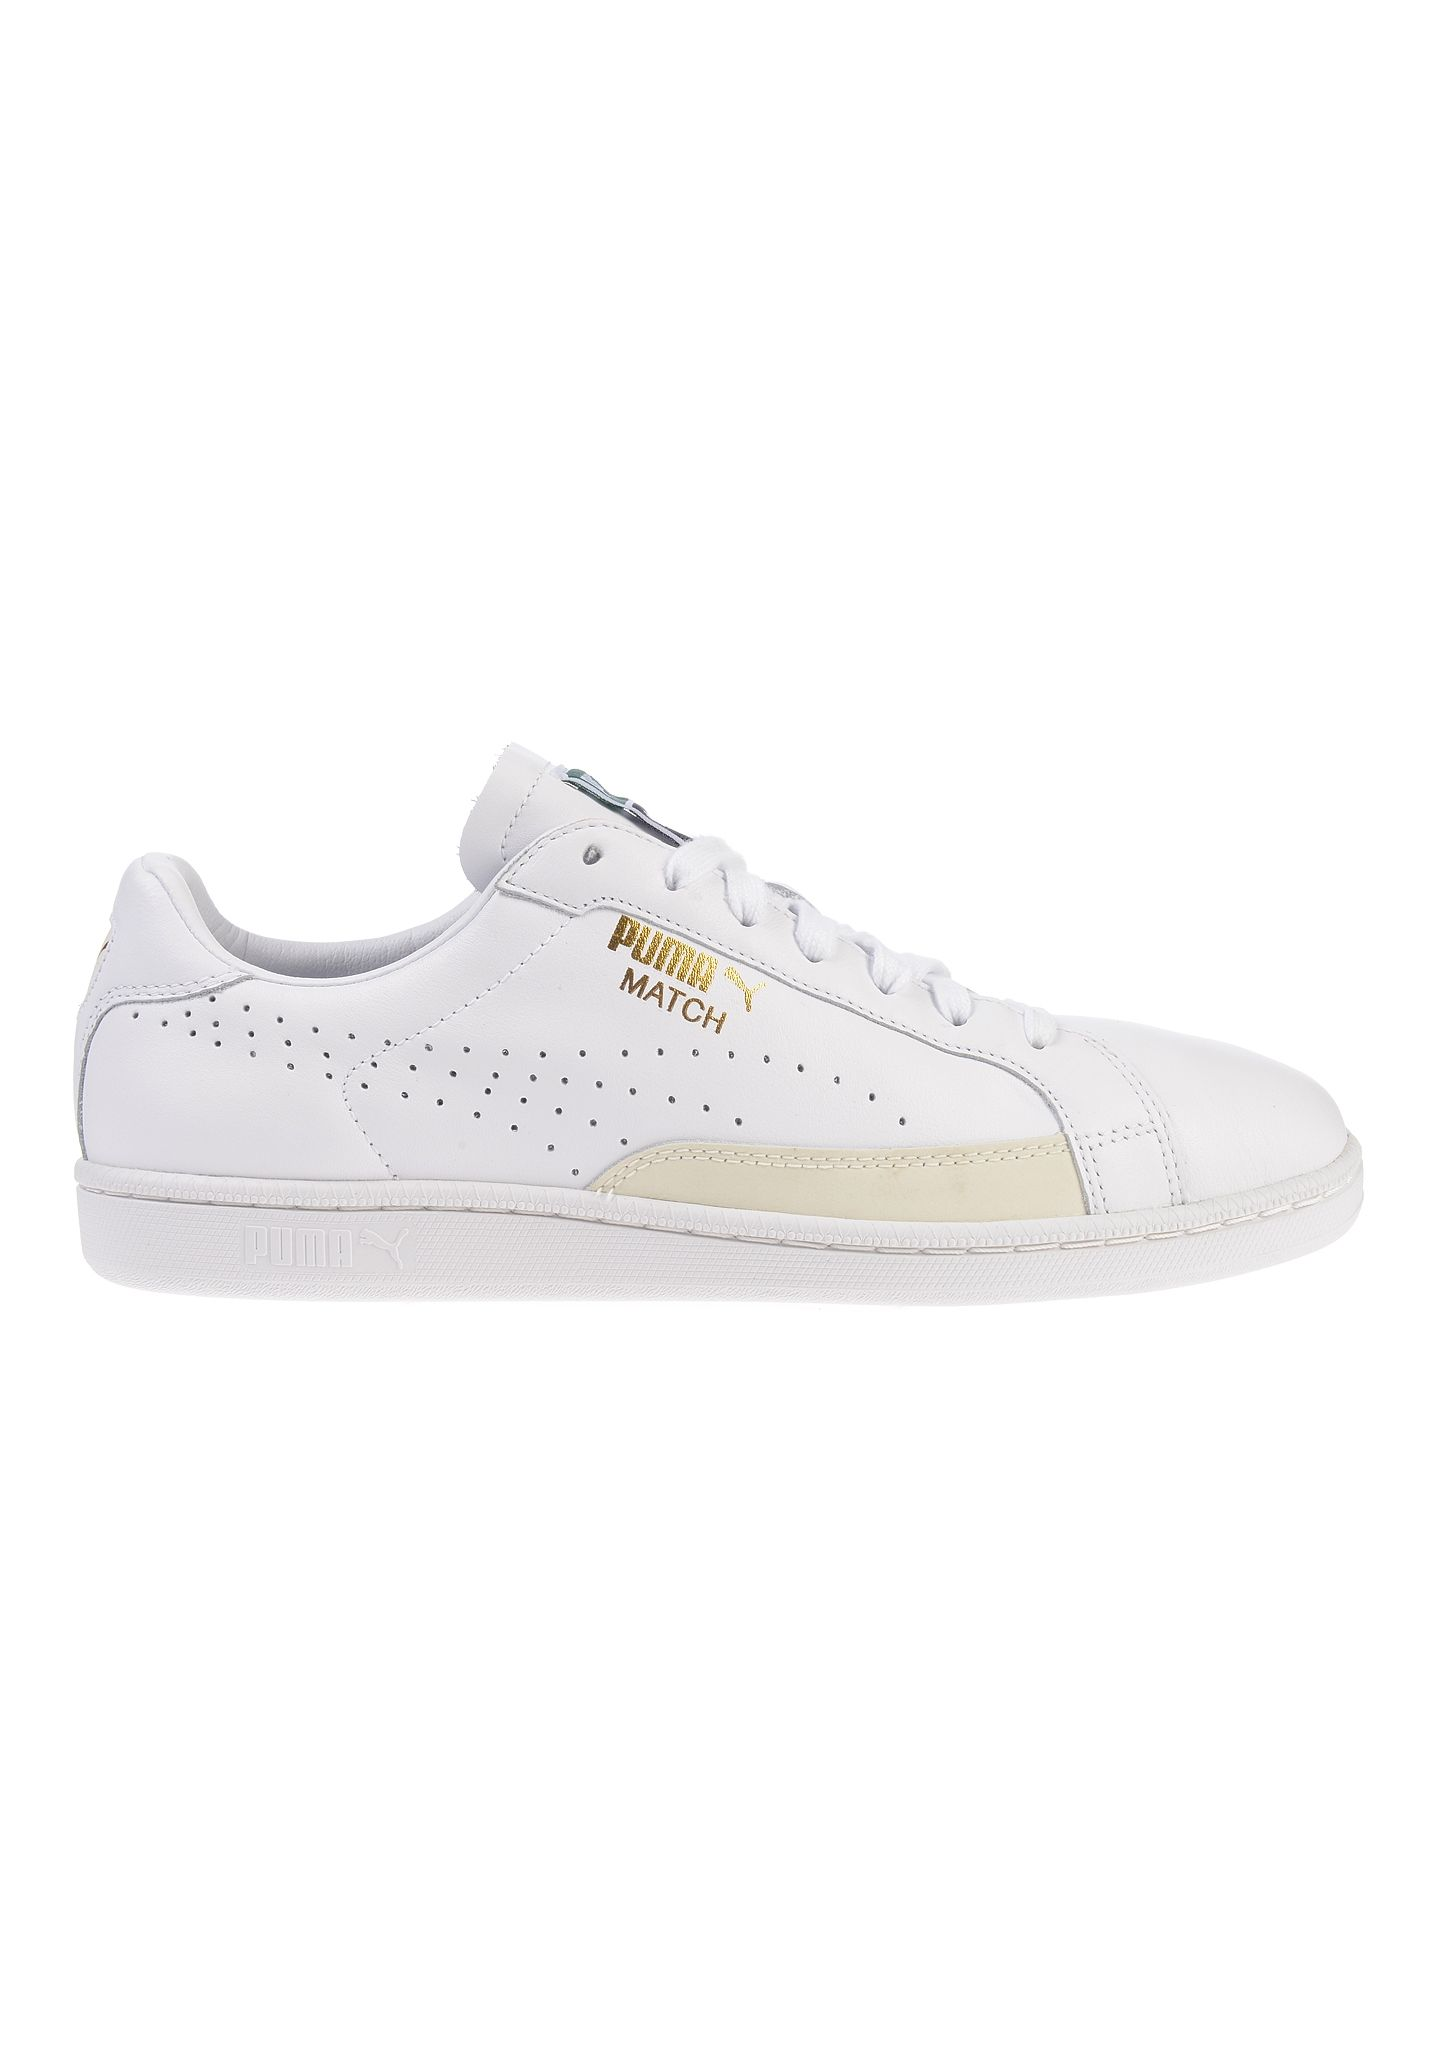 Puma Sneakers Wit Dames